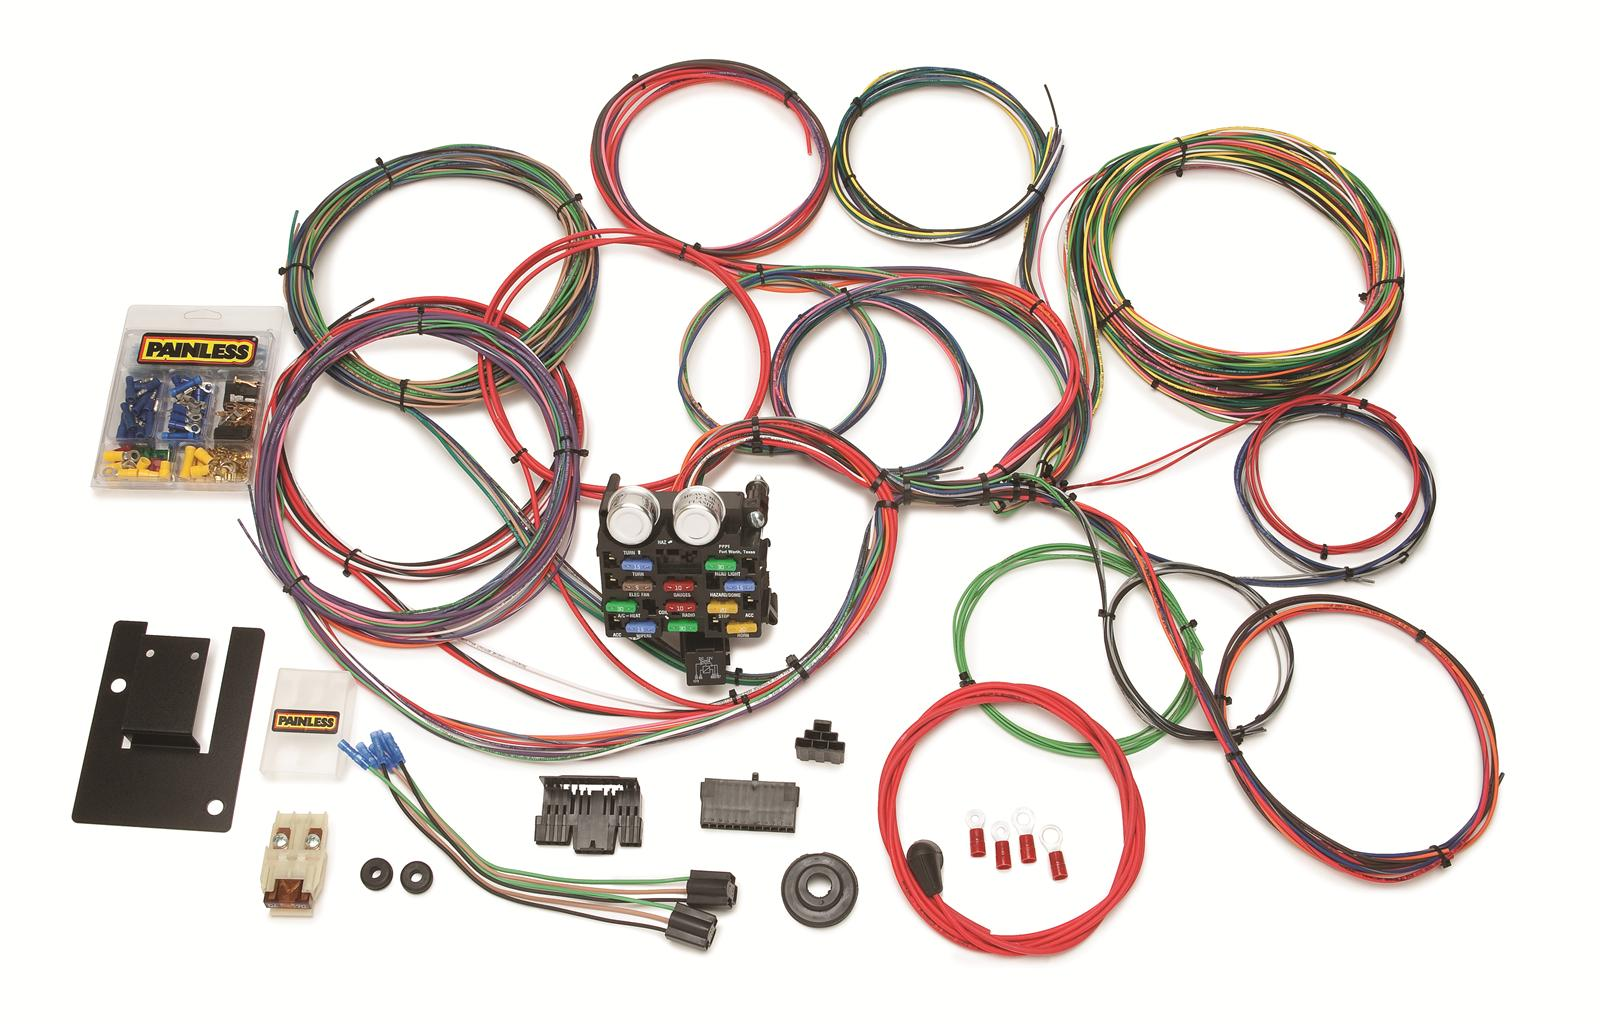 Pleasing Chevy Vega Wiring Harness Diagram Basic Electronics Wiring Diagram Wiring 101 Swasaxxcnl